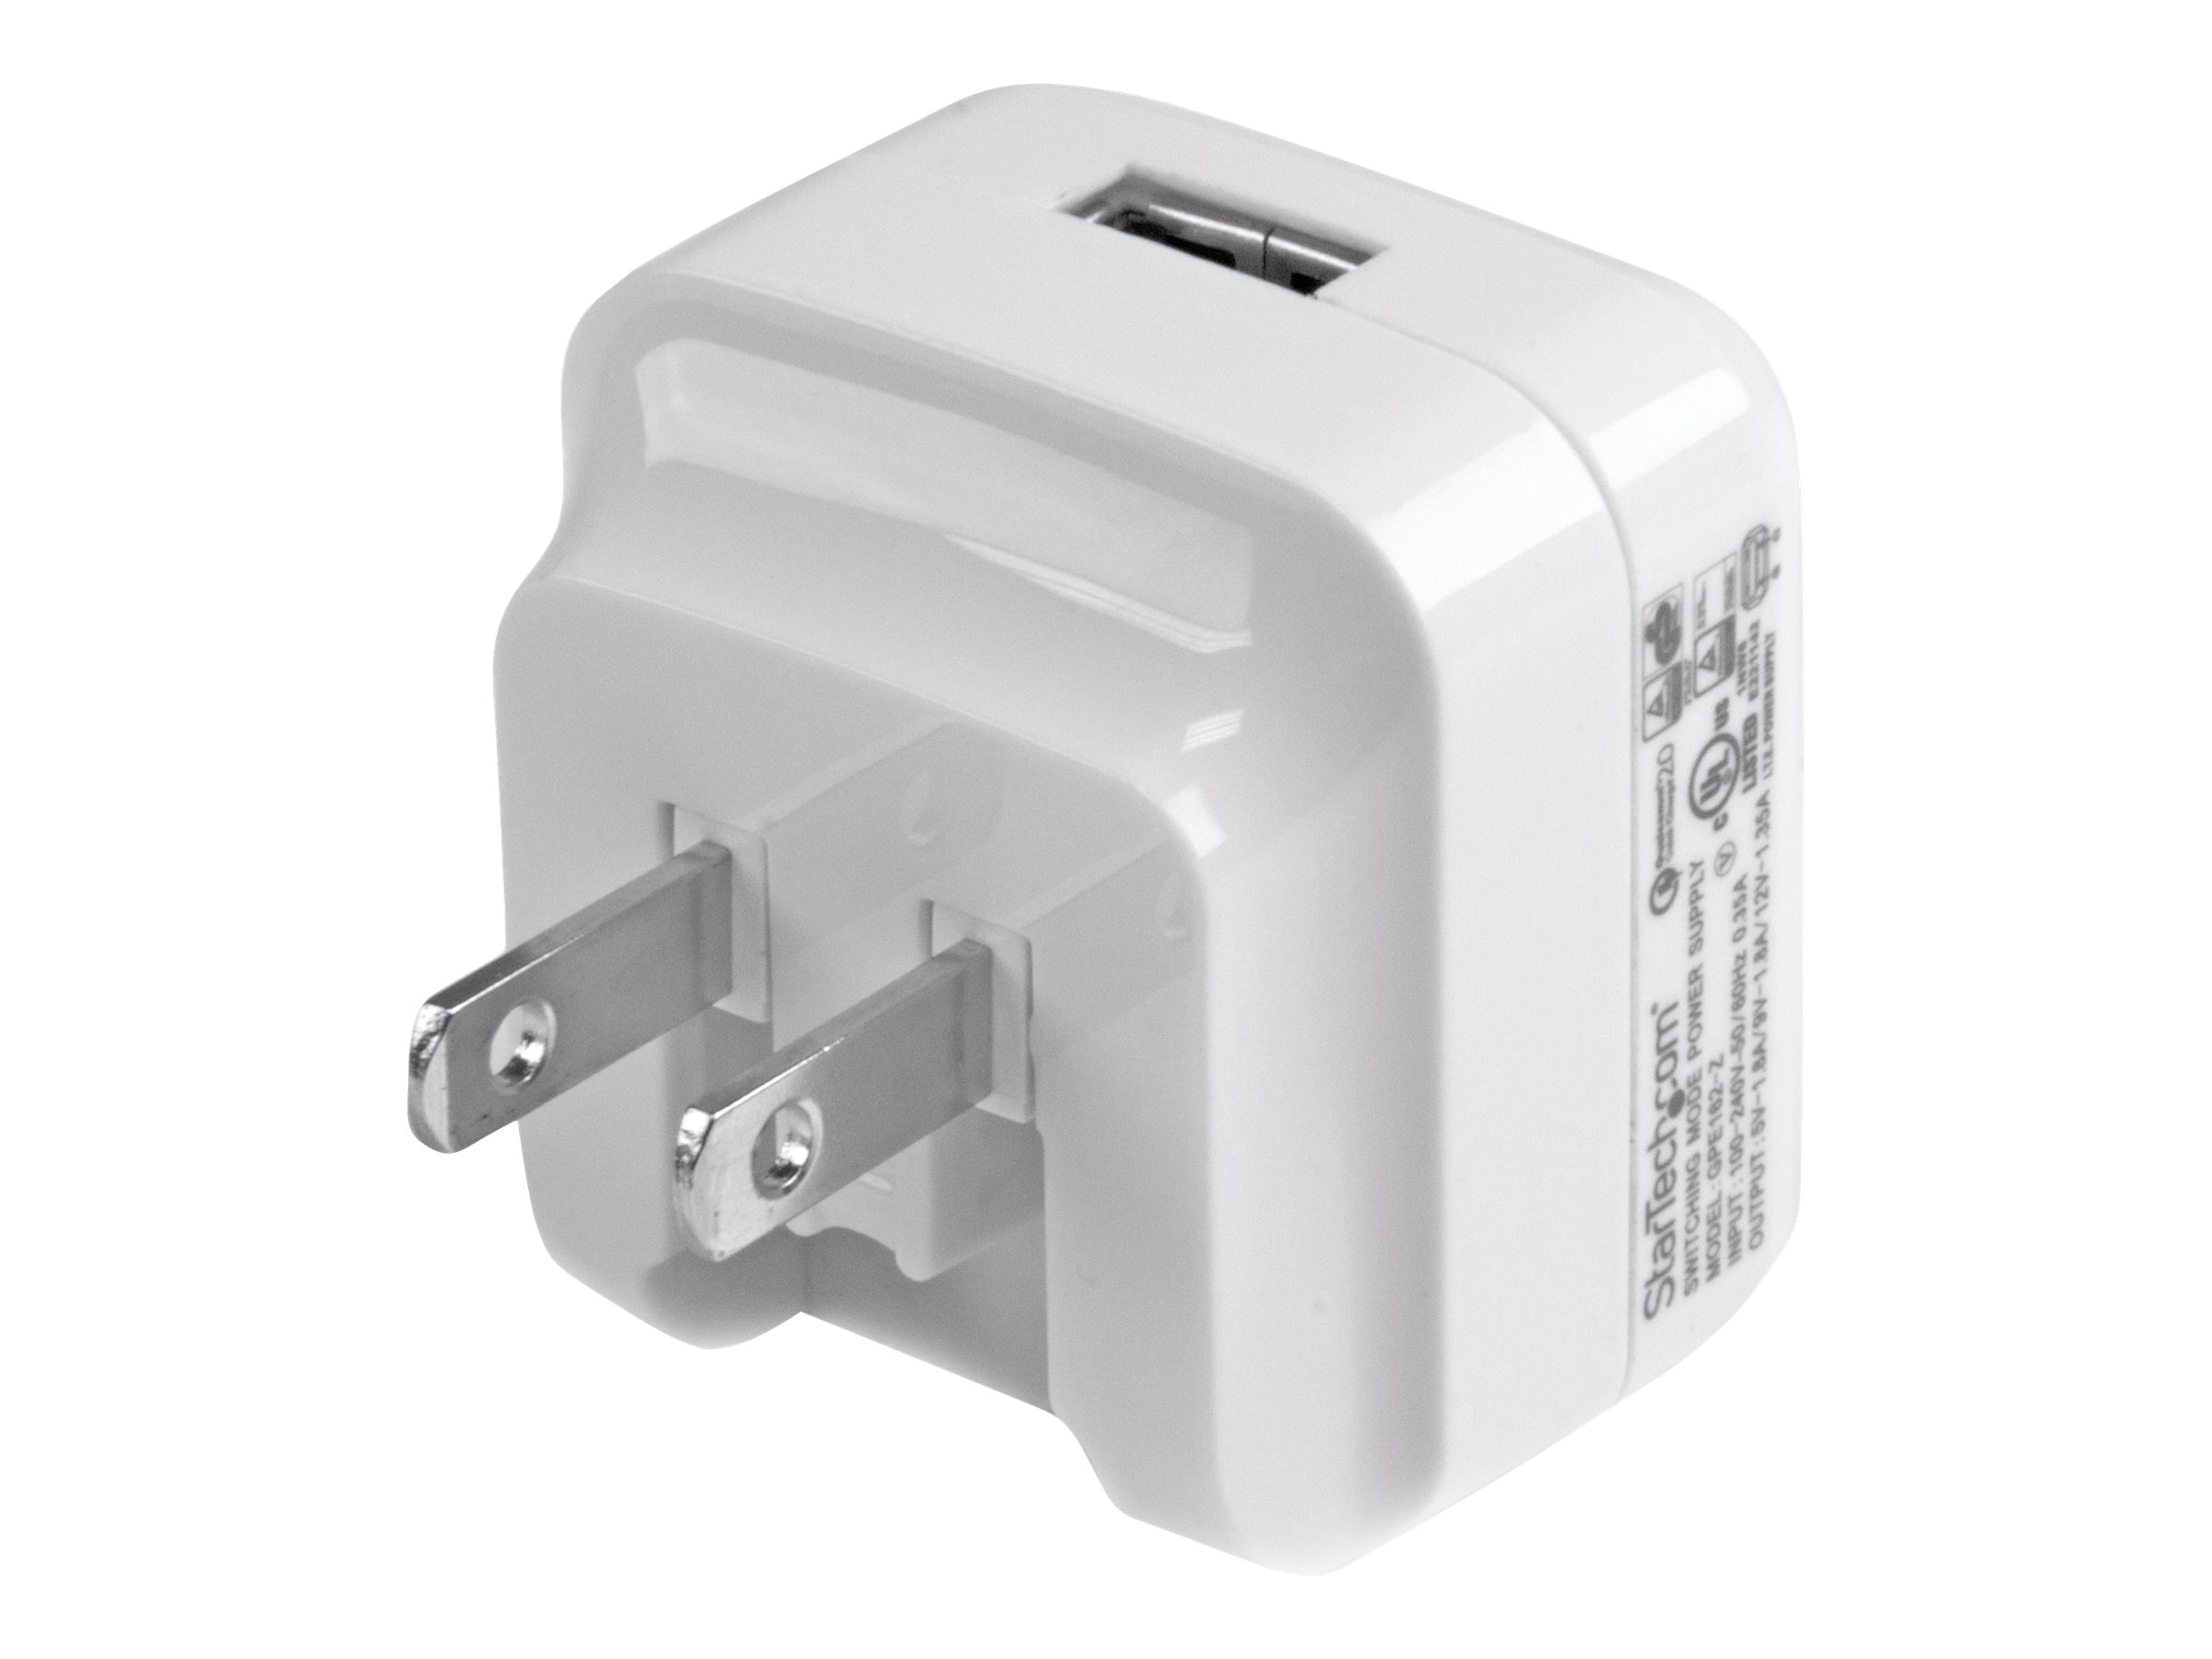 StarTech.com USB Wall Charger w  Quick Charge 2.0 for International Travel, White, USB1PACVWH